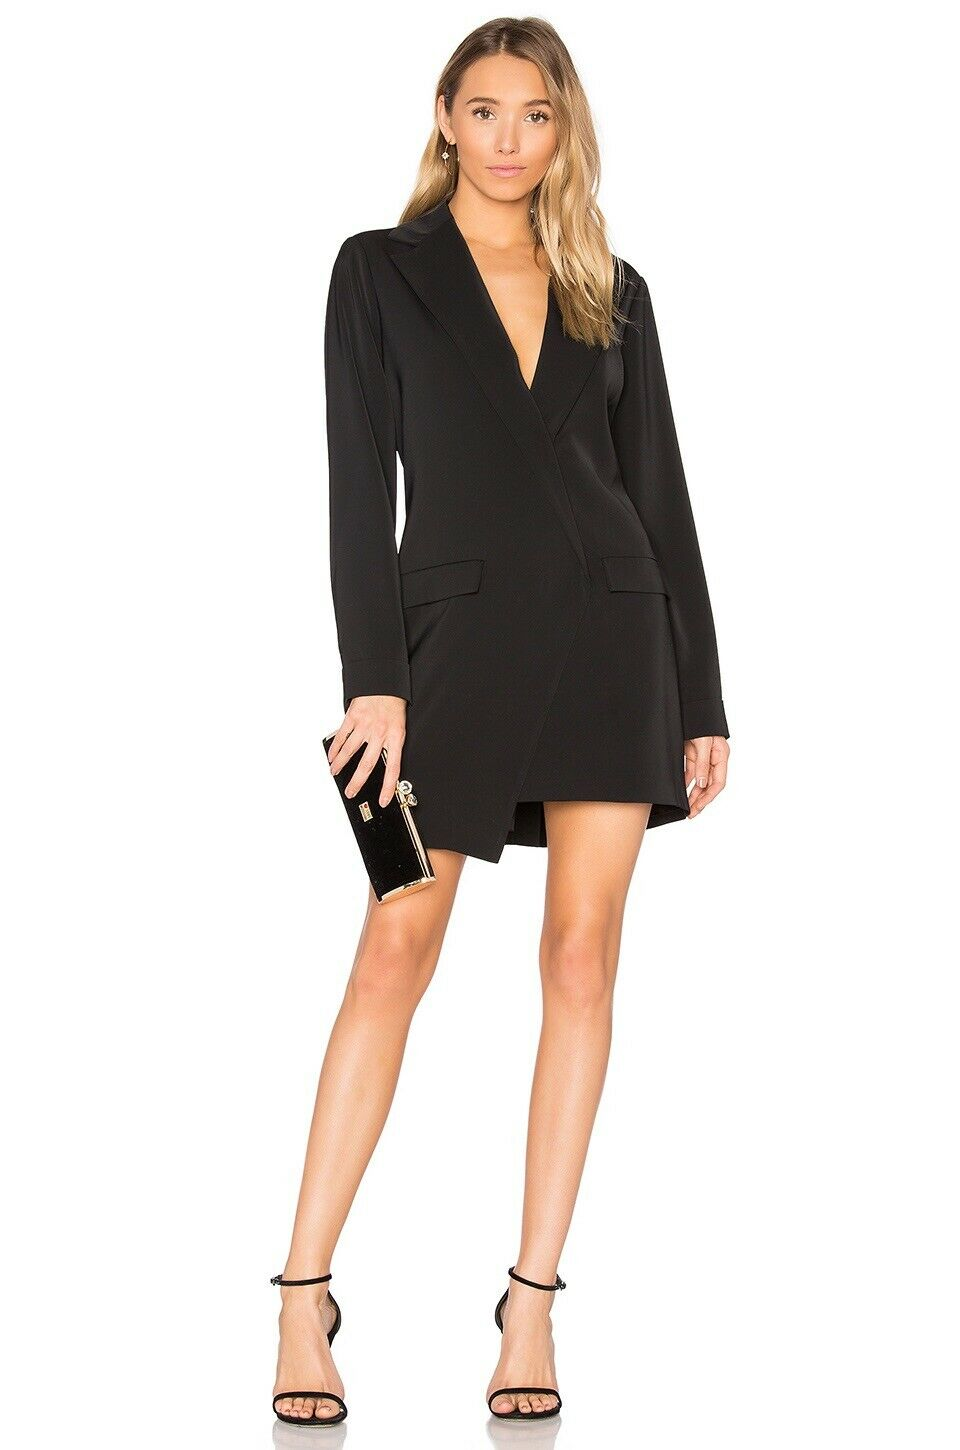 NWT MPC Blazer Mini Dress Faux Blazer schwarz MINKRosa M